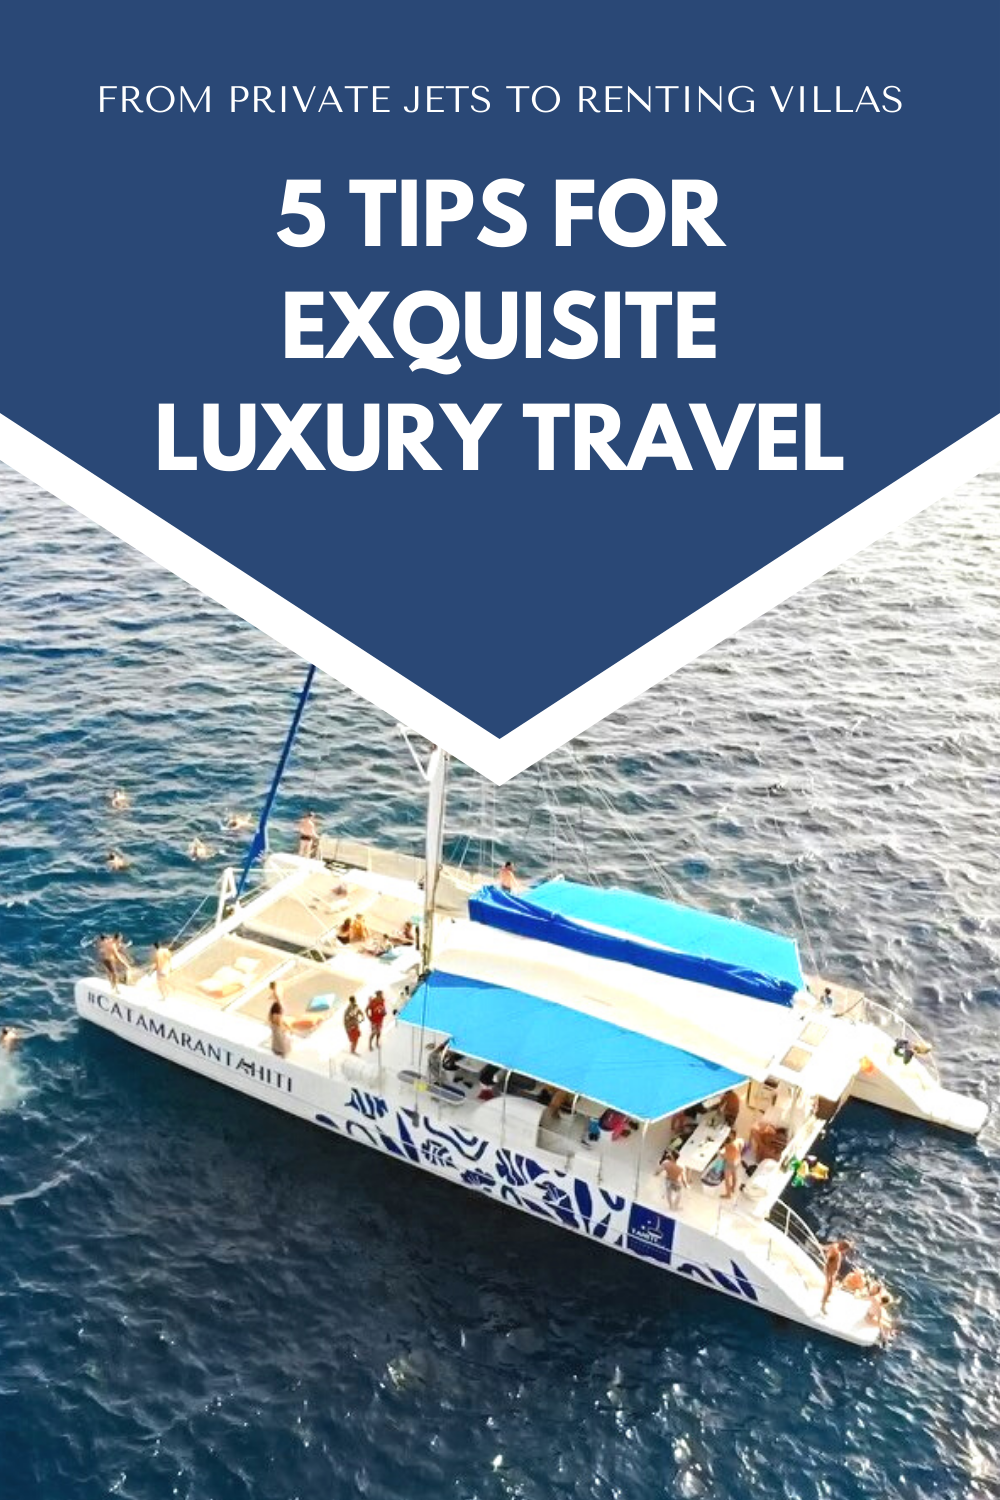 5 Tips For Exquisite Luxury Travel - From Private Jets to Renting Villas